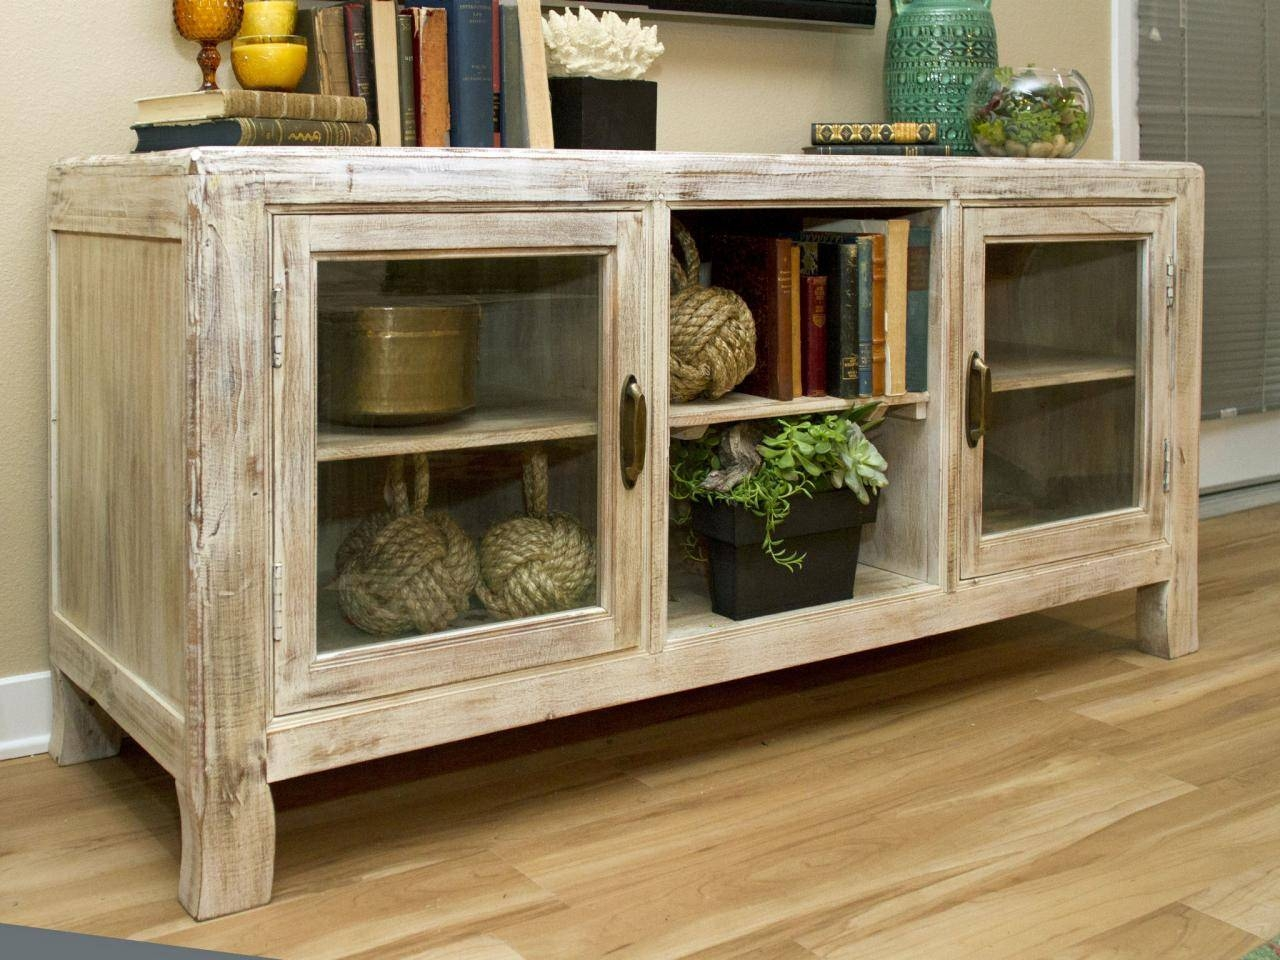 Sideboards. Outstanding Buffet Cabinets With Glass Doors: Buffet intended for Glass Sideboards (Image 27 of 30)